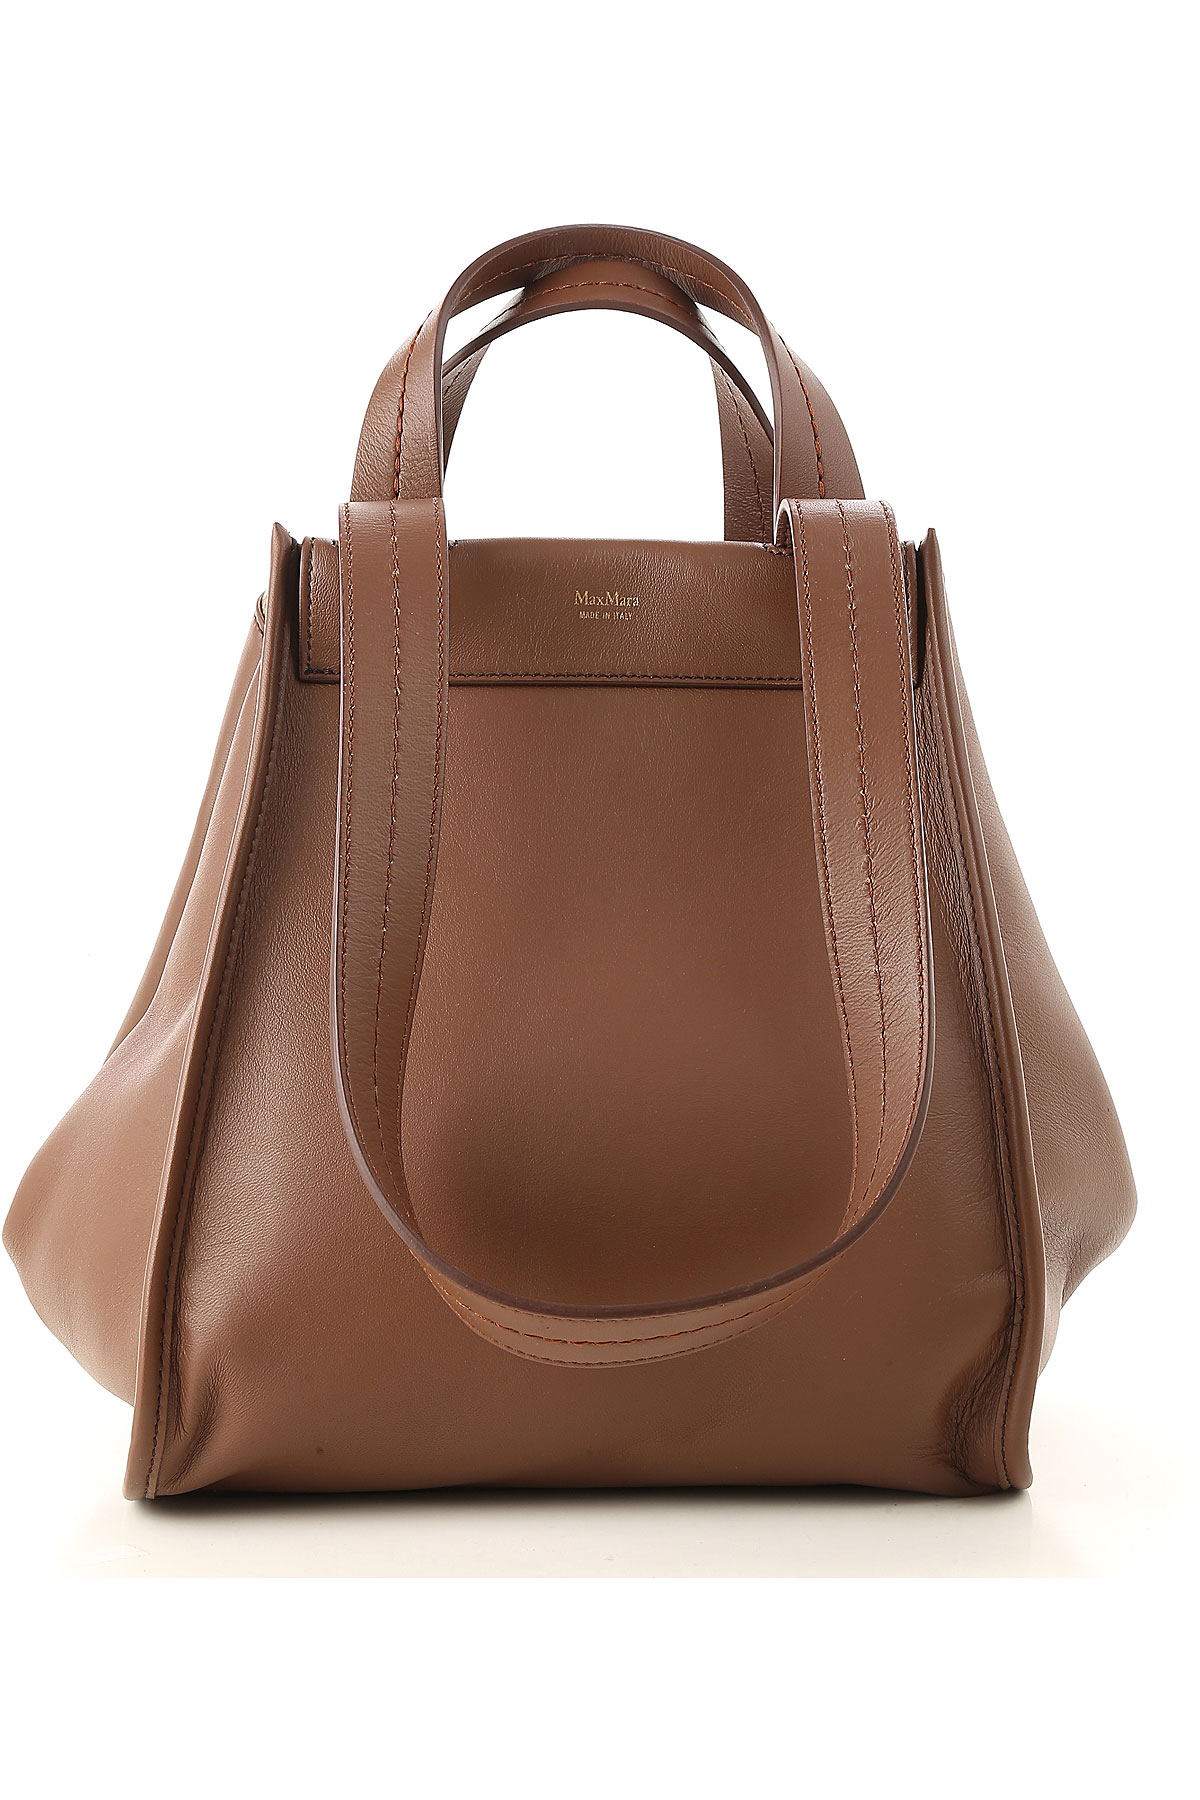 Image of Max Mara Tote Bag, Brown, Leather, 2017